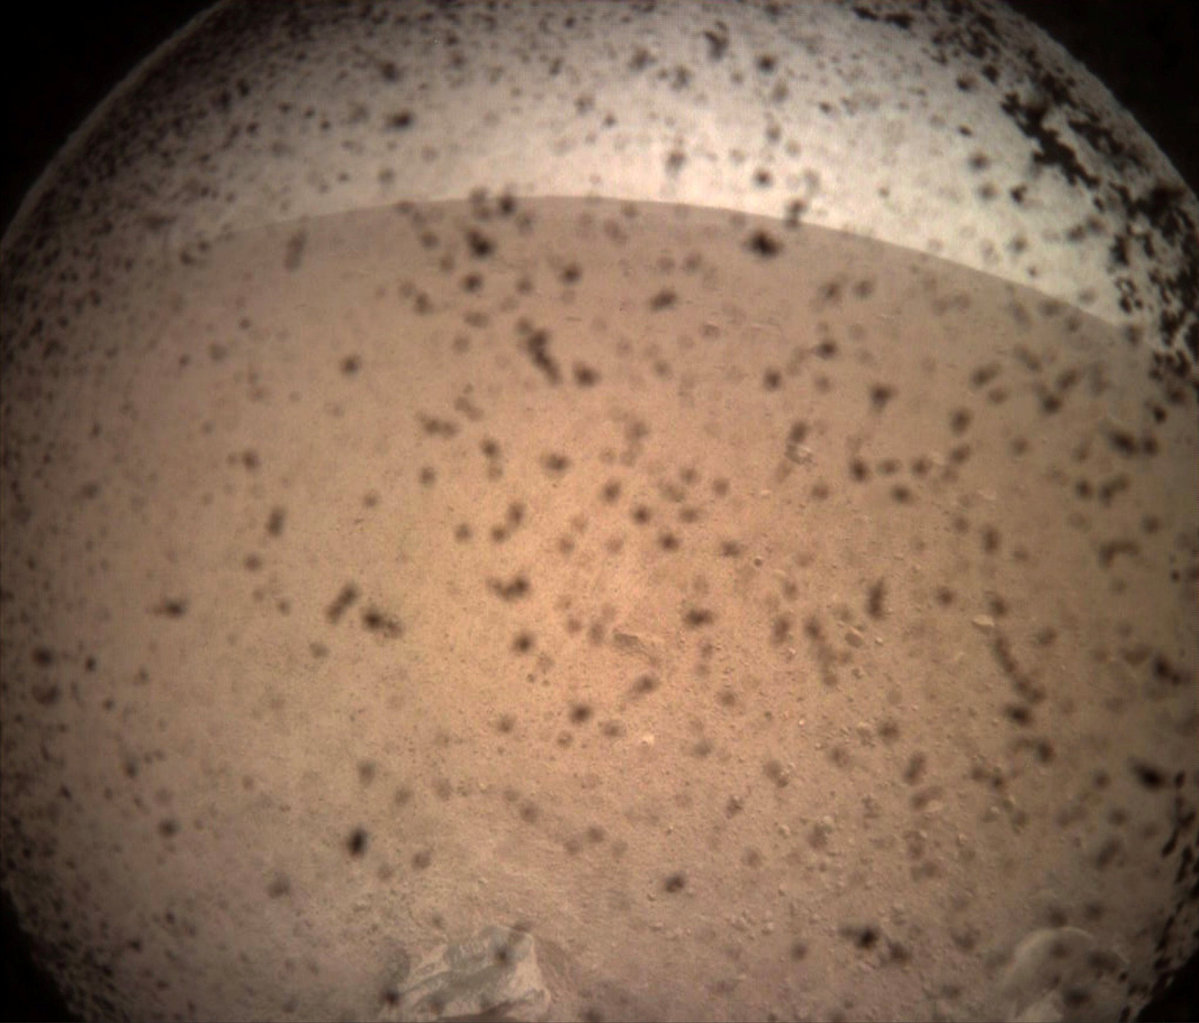 Camera InSight landed on Mars and sent the first photo